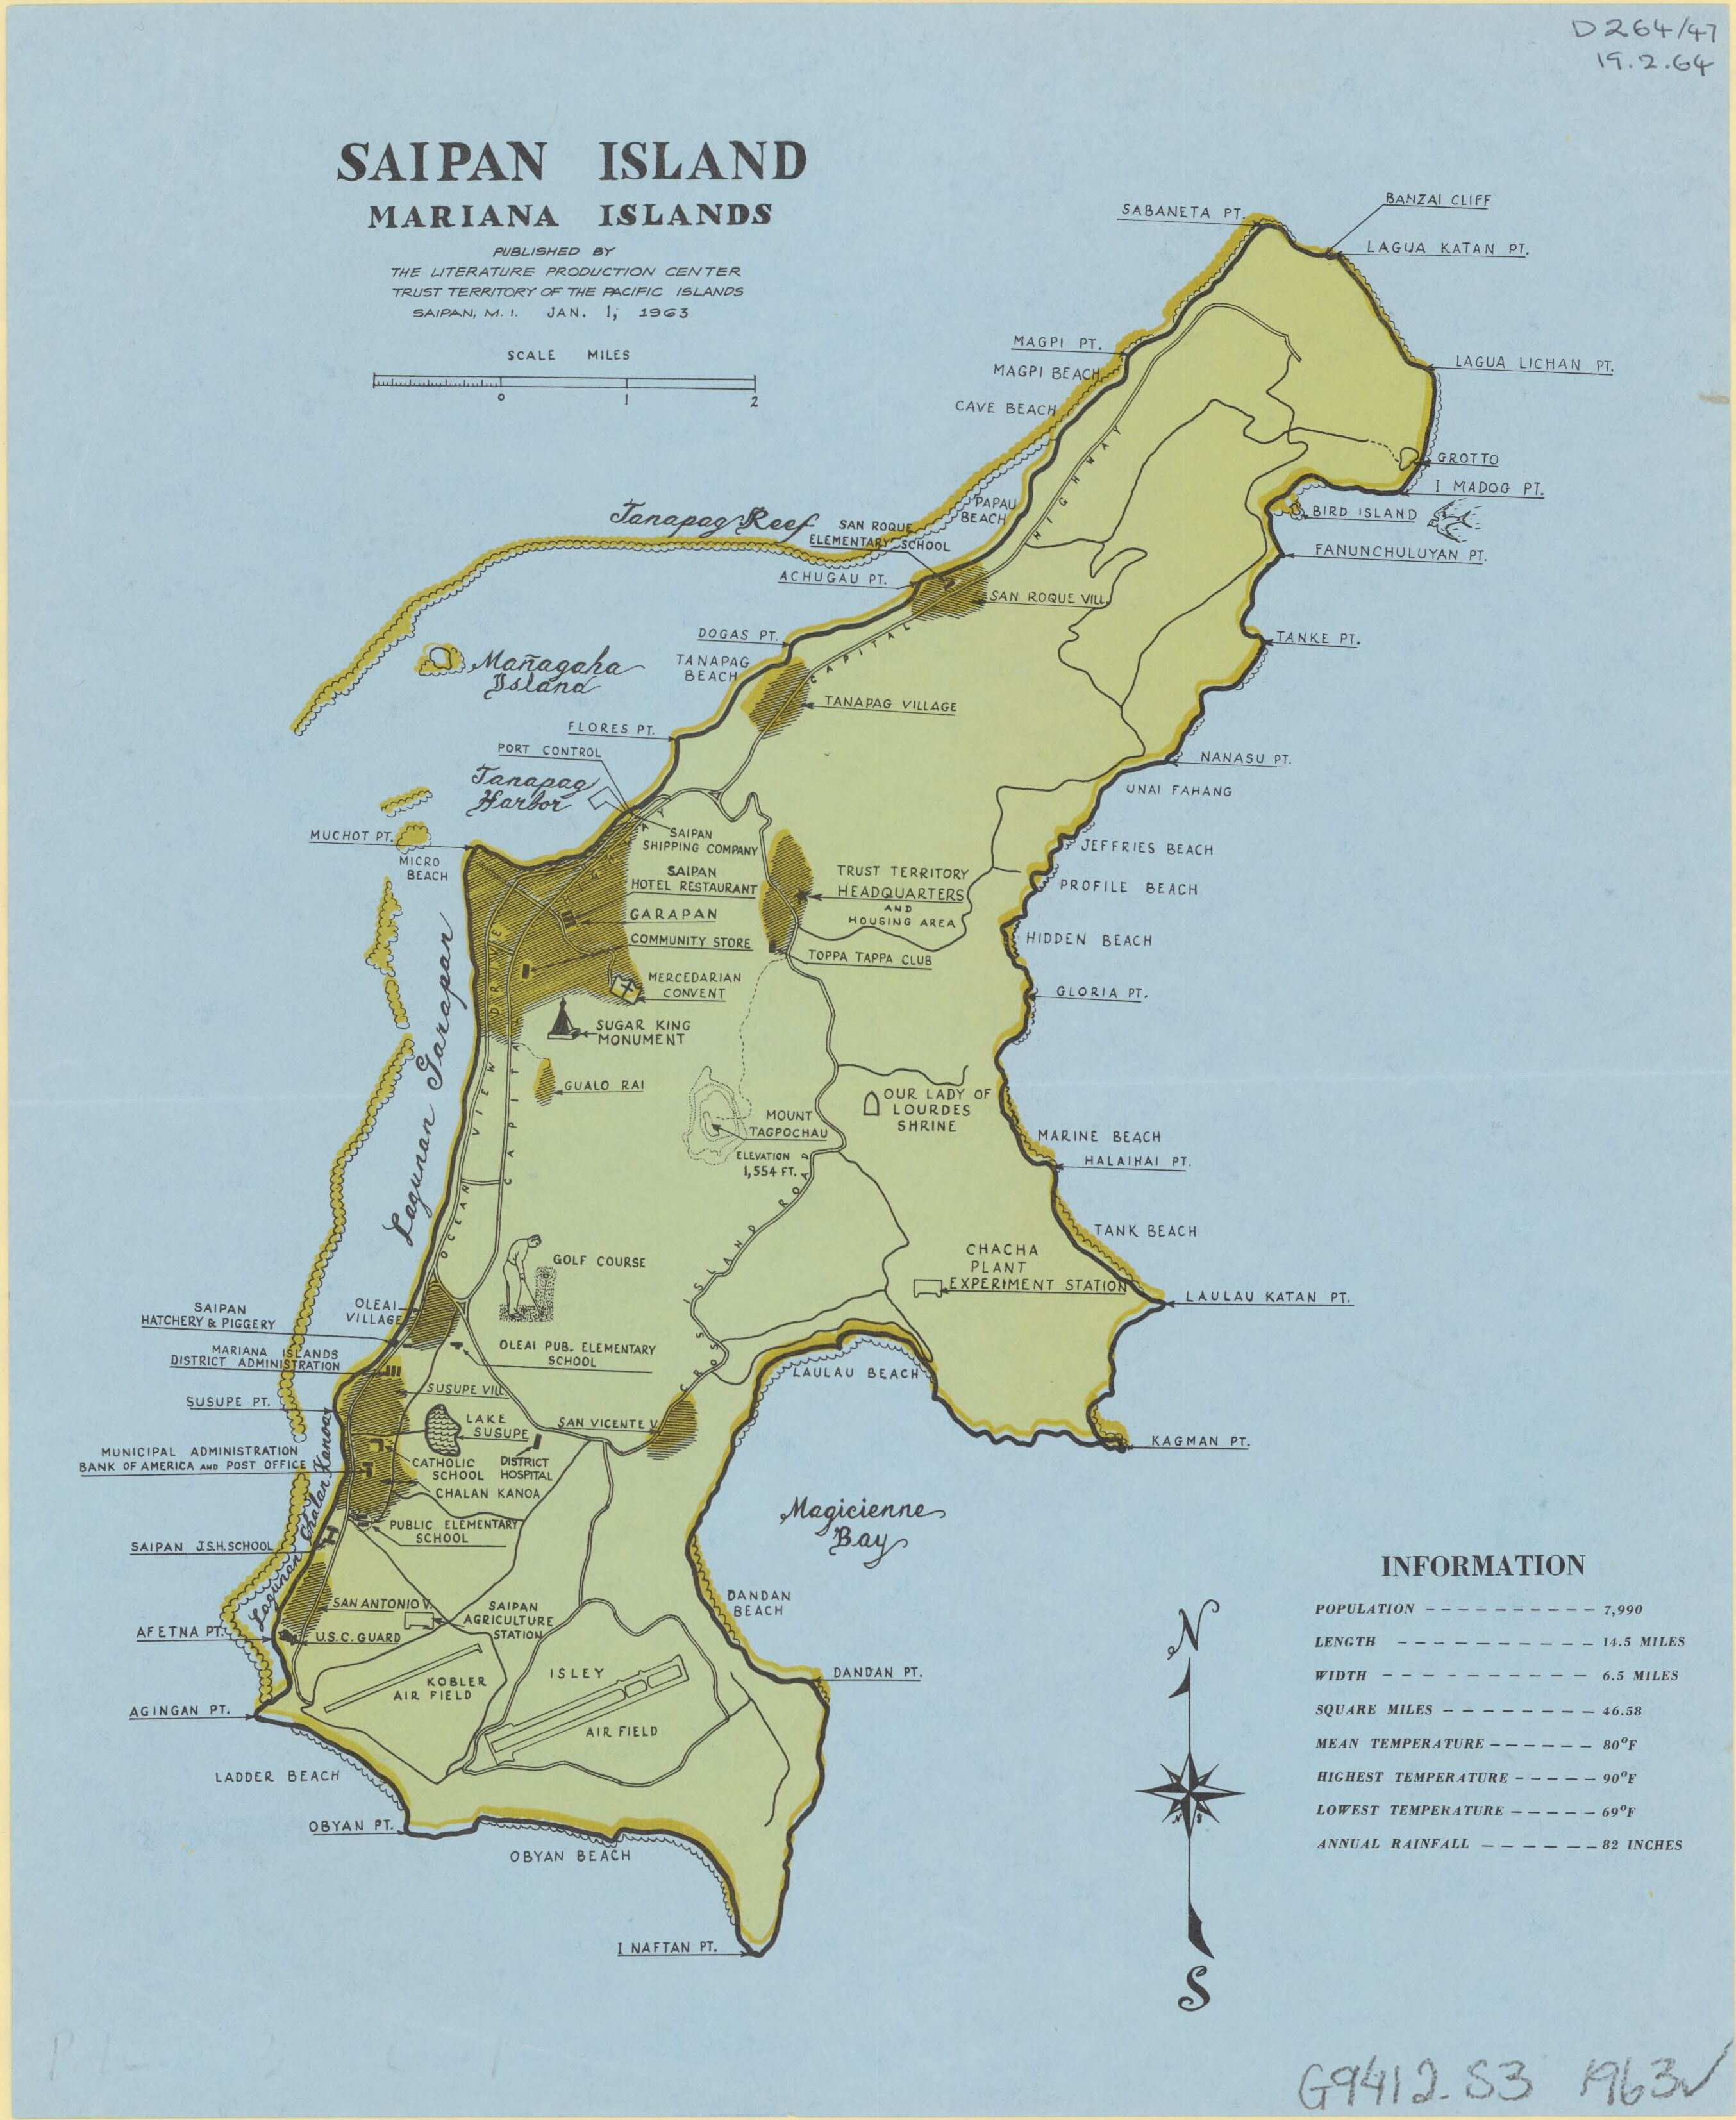 Saipan Island, Mariana Islands (1963) | t r a v e l in 2019 ... on papeete map, battle of midway map, peleliu map, micronesia map, iwo jima map, tinian map, pago pago, guam map, tarawa atoll, mariana islands map, coral sea map, marshall islands map, malta map, midway atoll, wake island, philippines map, guadalcanal map, palau map, tarawa map, battle of guam, pohnpei map, sipan island map, pacific war, saipan international airport, howland island, northern mariana islands, taiohae map, larry hillblom, pago pago map, battle of saipan, yap map,